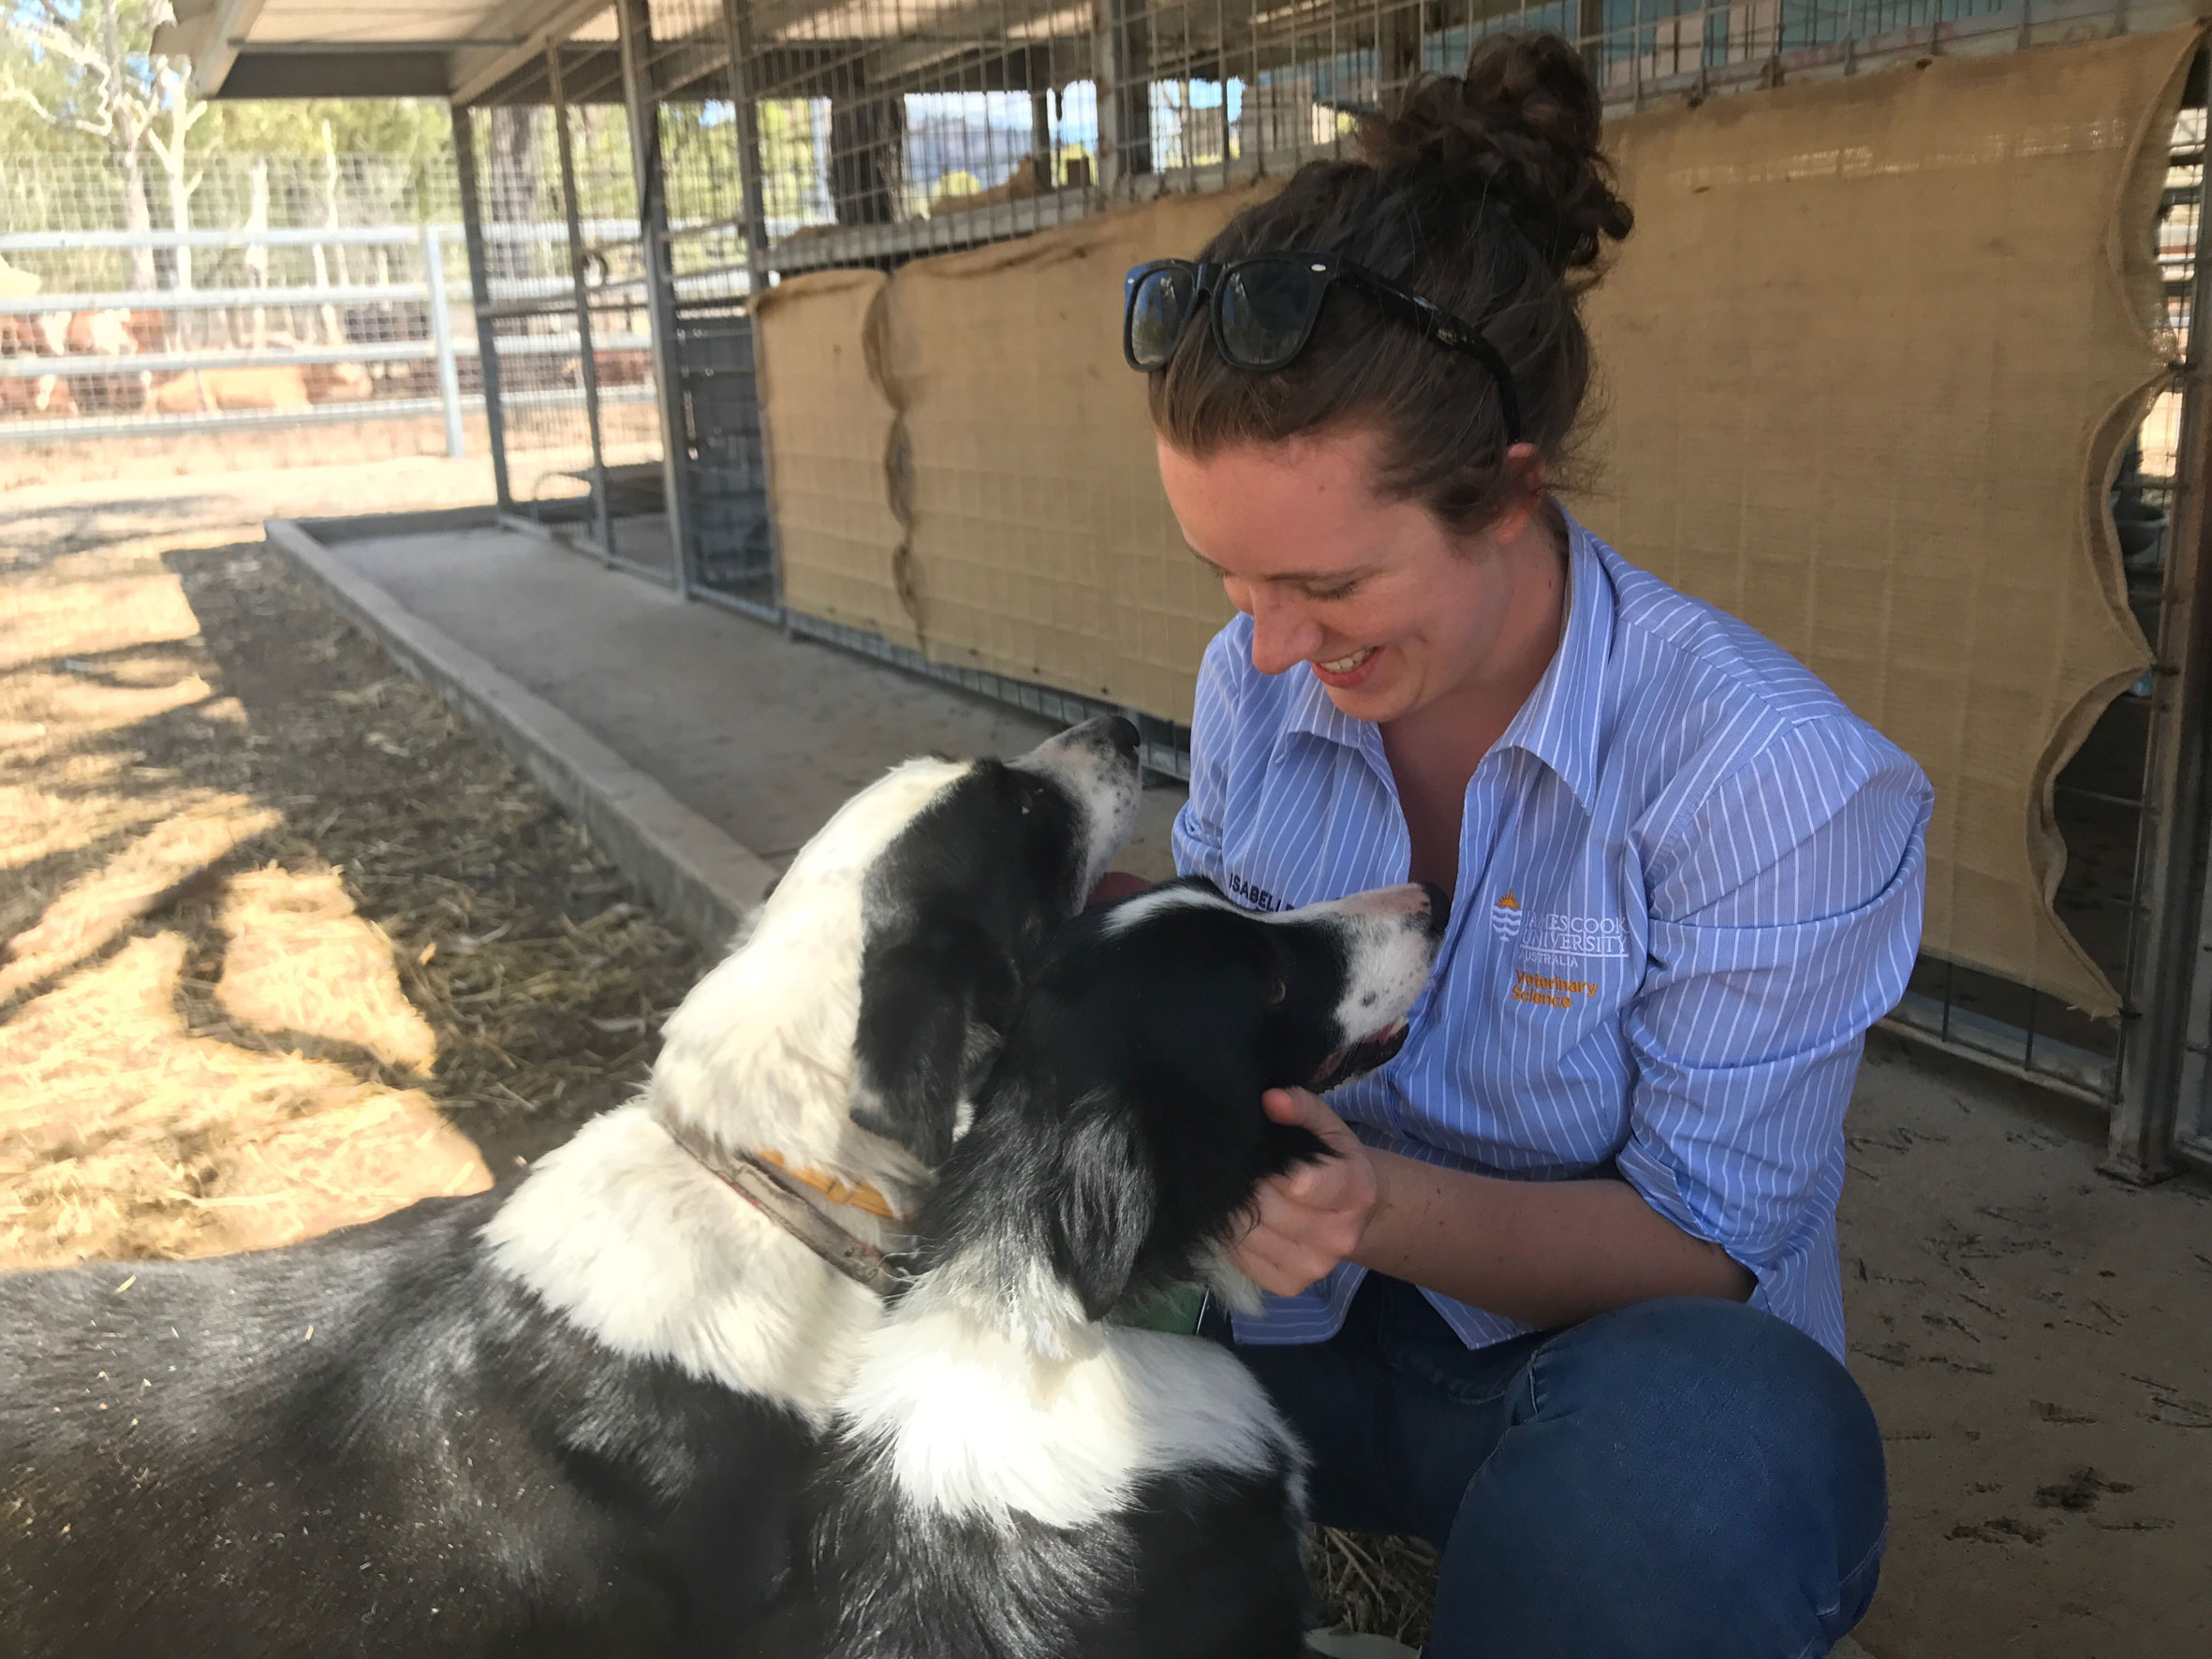 Vet student patting two border collie dogs